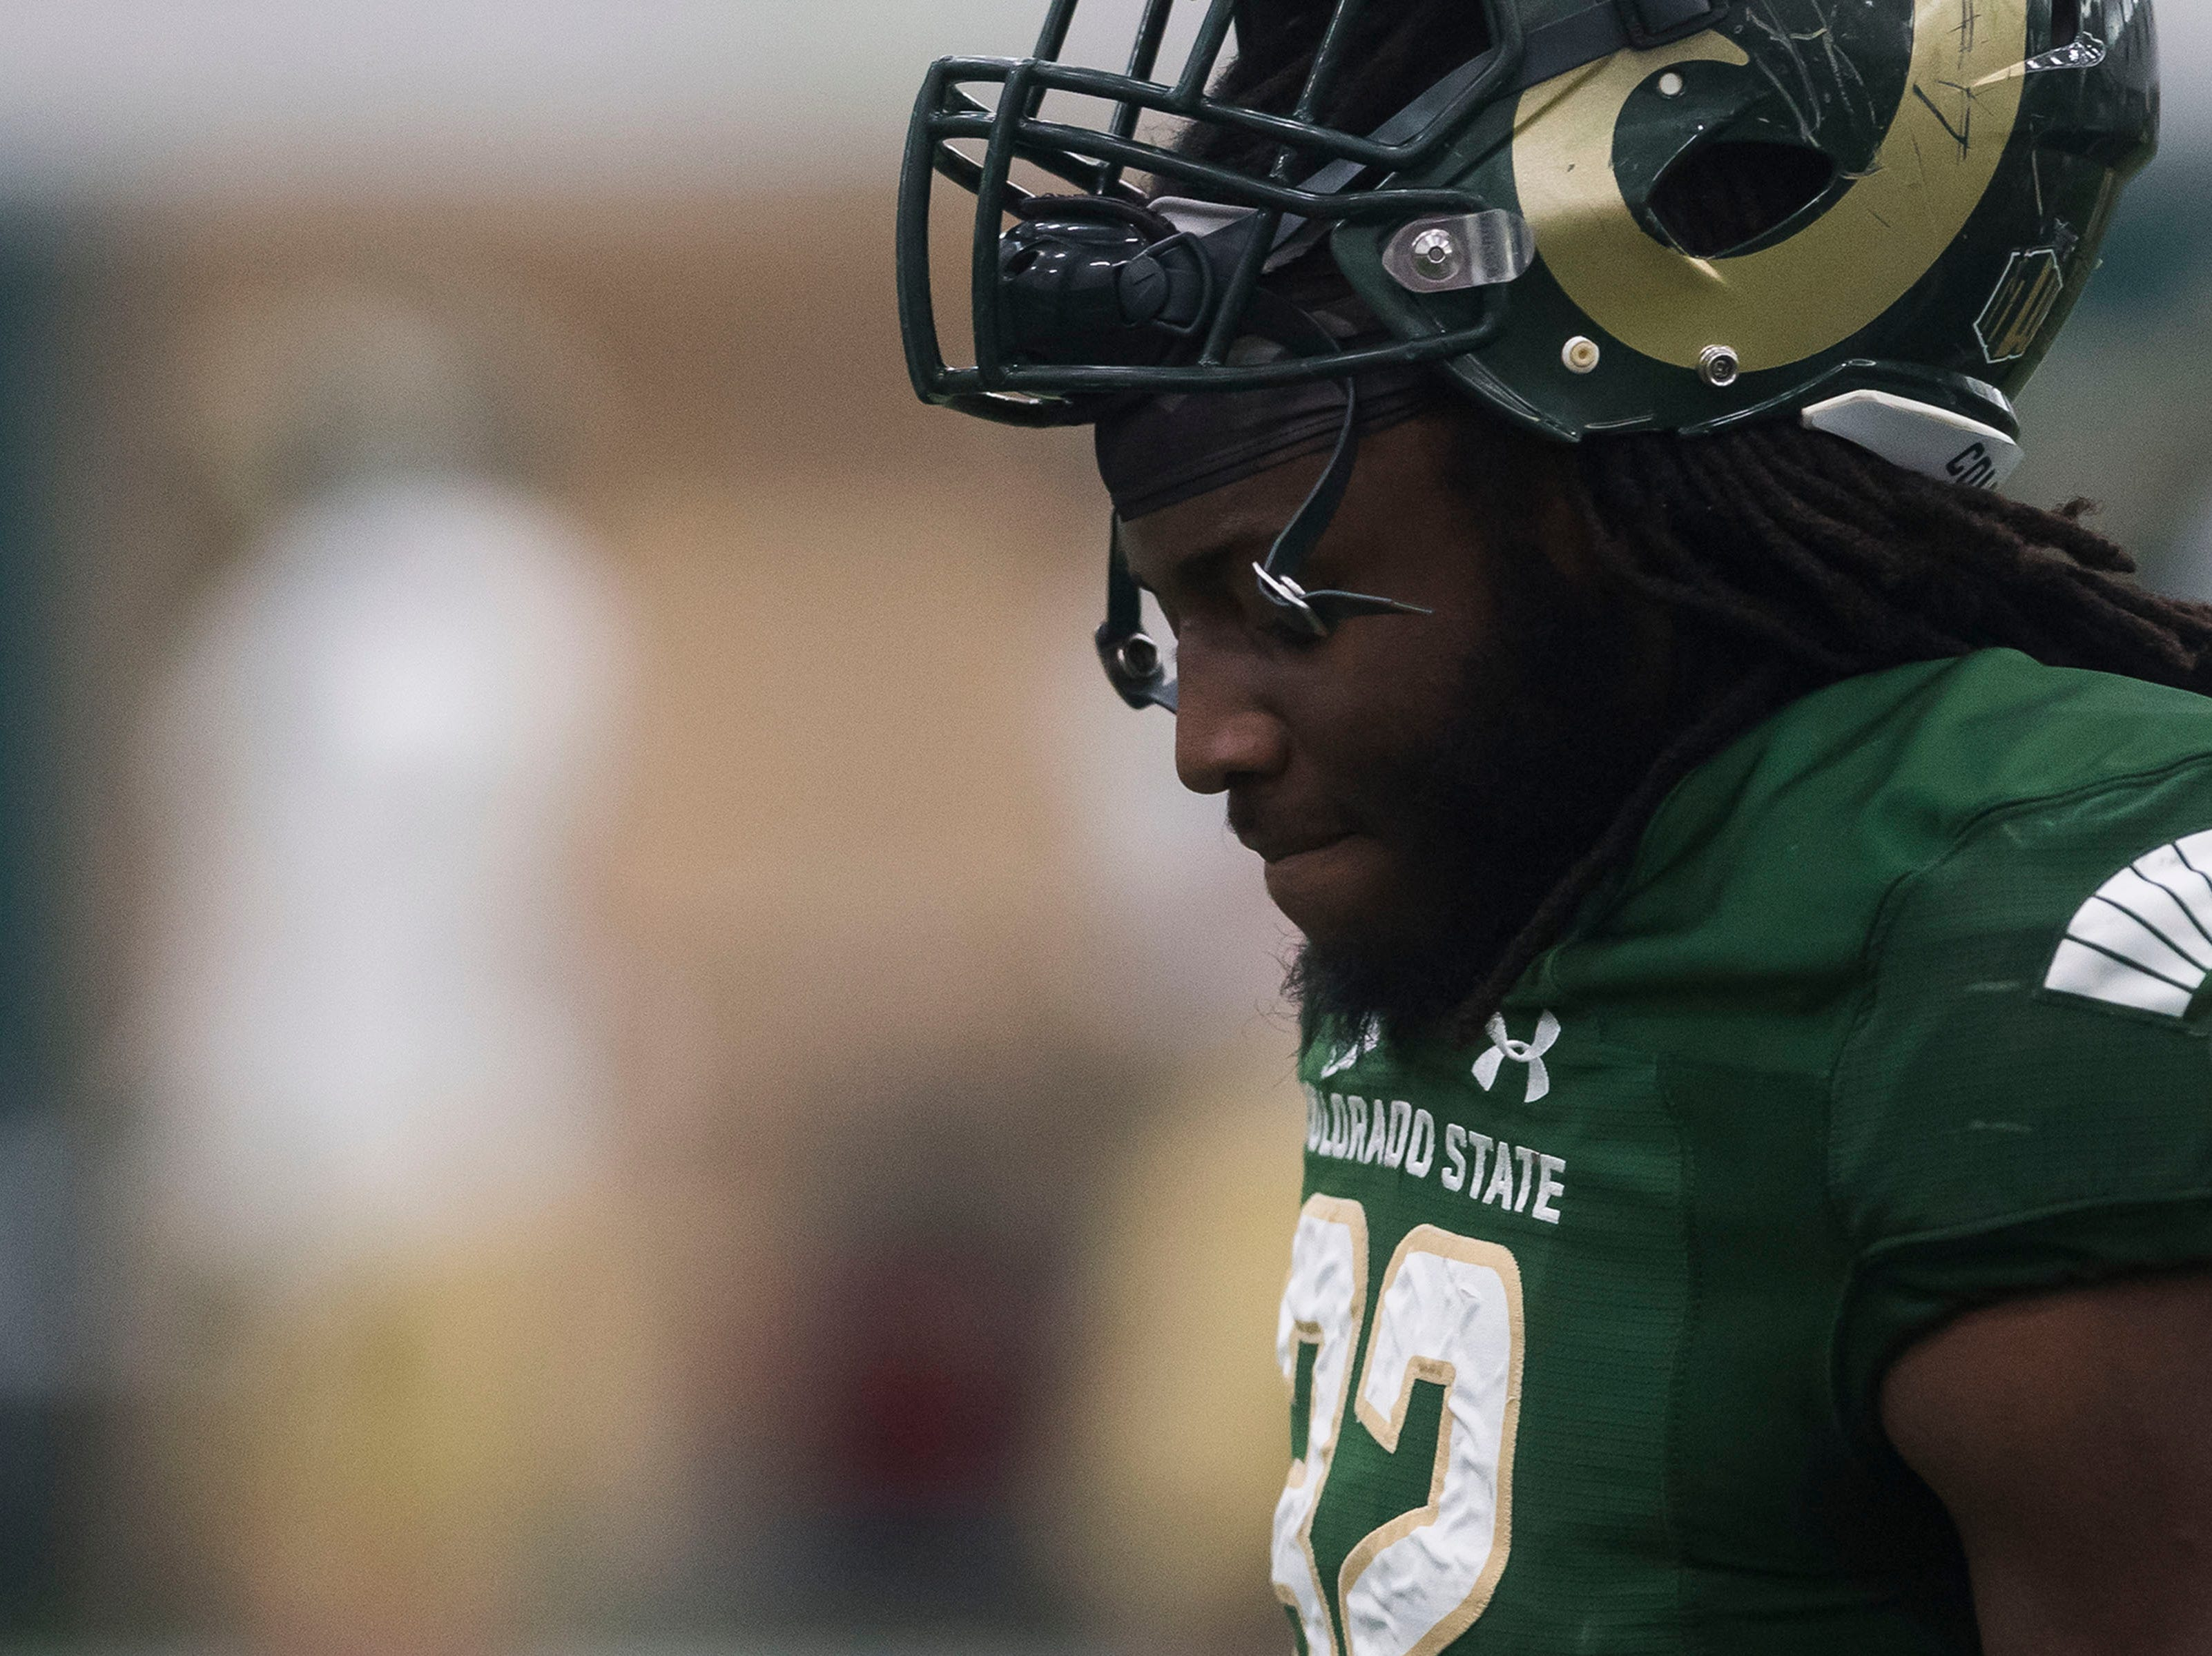 CSU junior running back Marcus McElrow (32) goes through drills preceding CSU's Spring game on Thursday, March 14, 2019, at their indoor practice facility in Fort Collins, Colo.